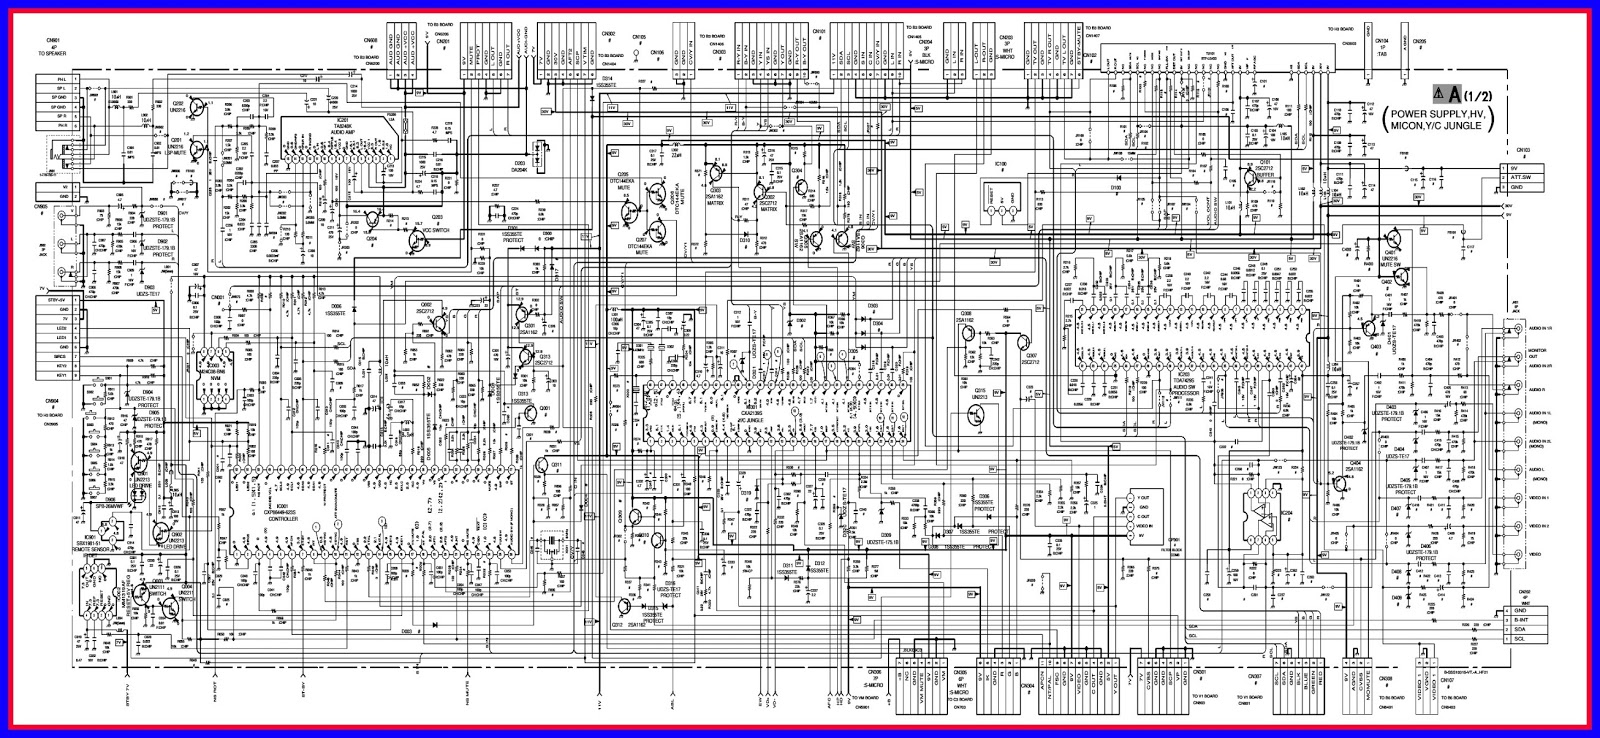 sony tv diagram wiring diagram for light switch u2022 sony crt tv schematic diagram sony [ 1600 x 738 Pixel ]